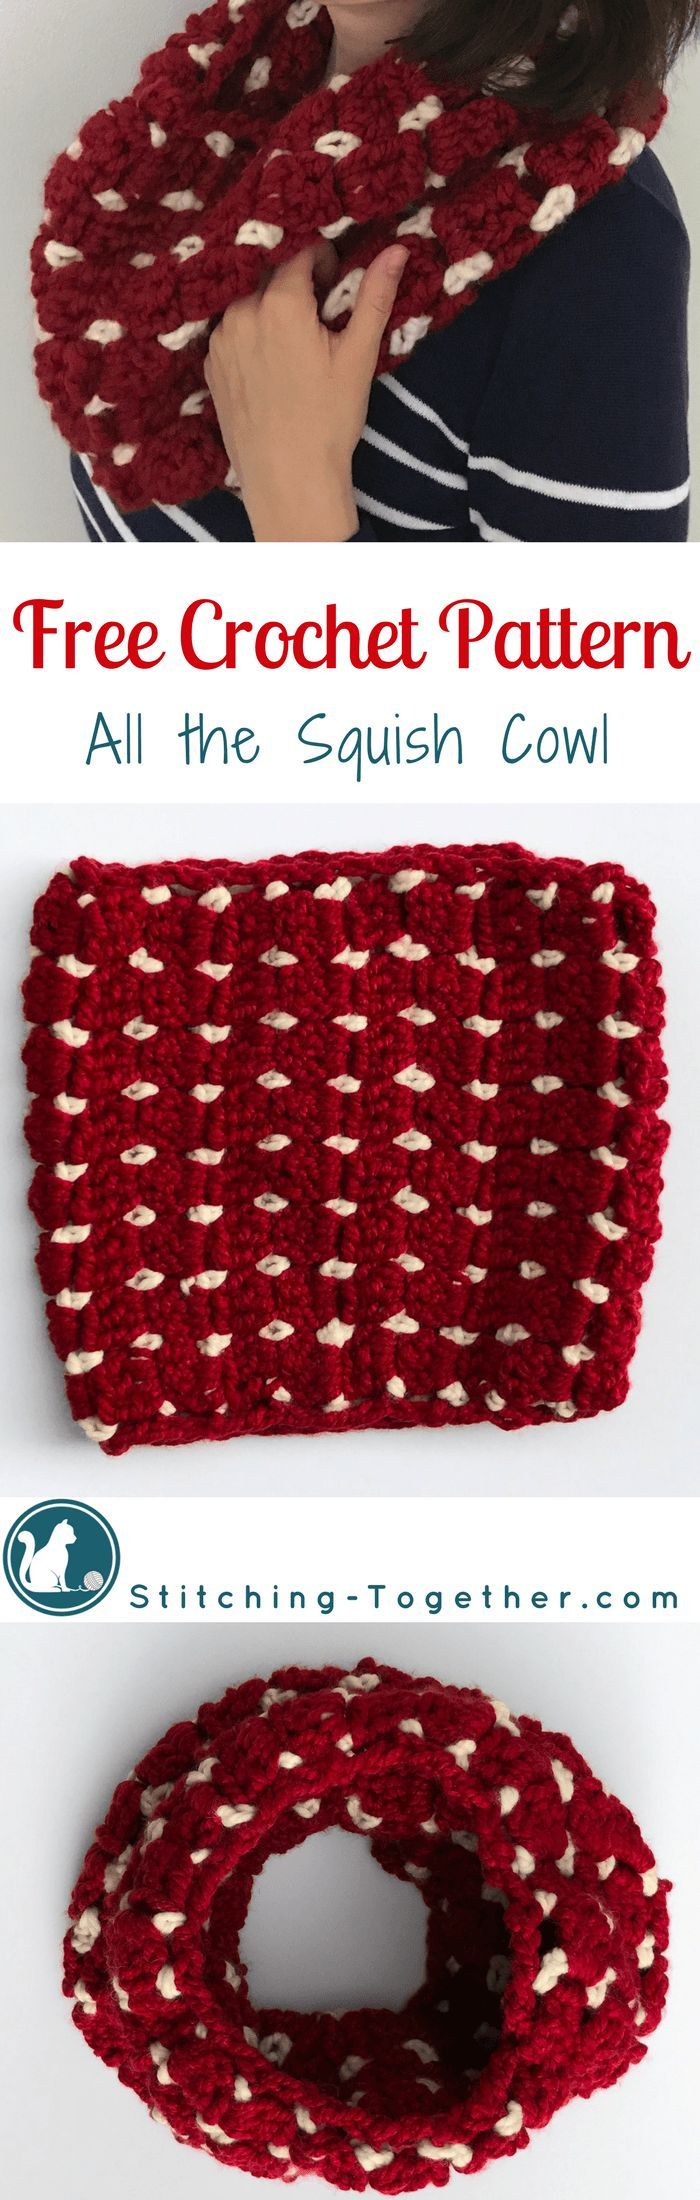 542 best crochet scarves and cowls images on pinterest crochet all the squish cowl crochet scarf patternscrochet bankloansurffo Choice Image